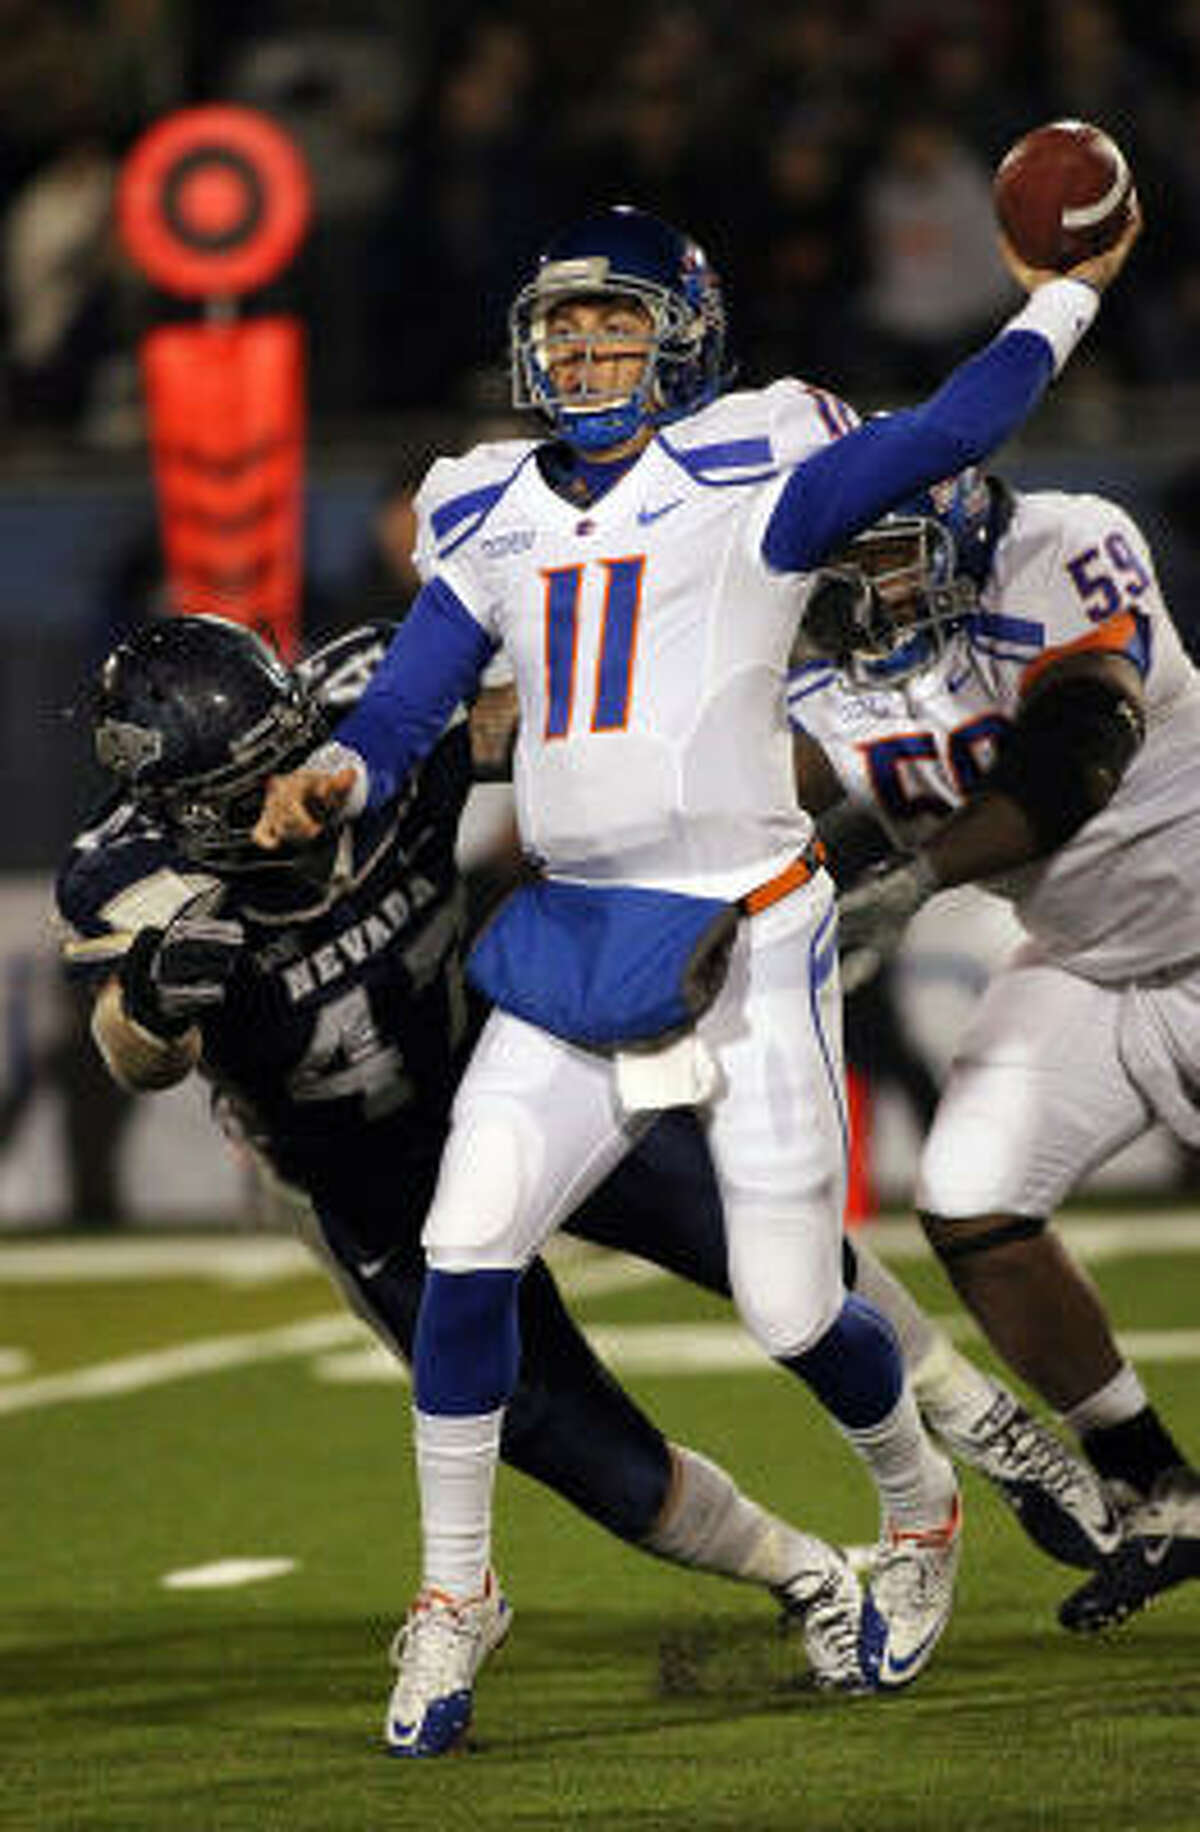 Boise State quarterback Kellen Moore delivers a passe under pressure in the first quarter.